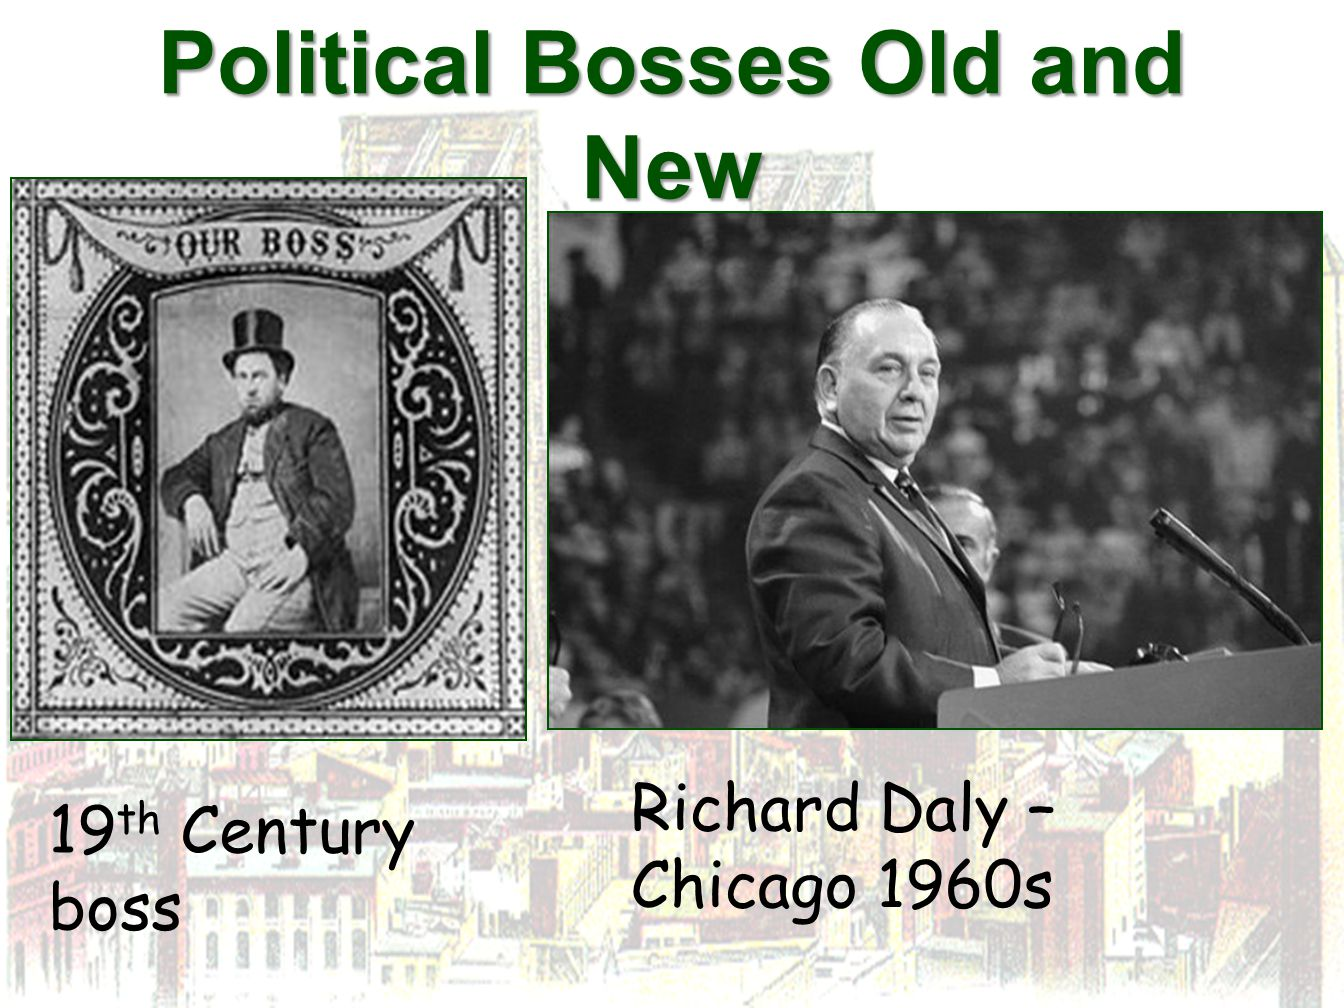 Political Bosses Old and New